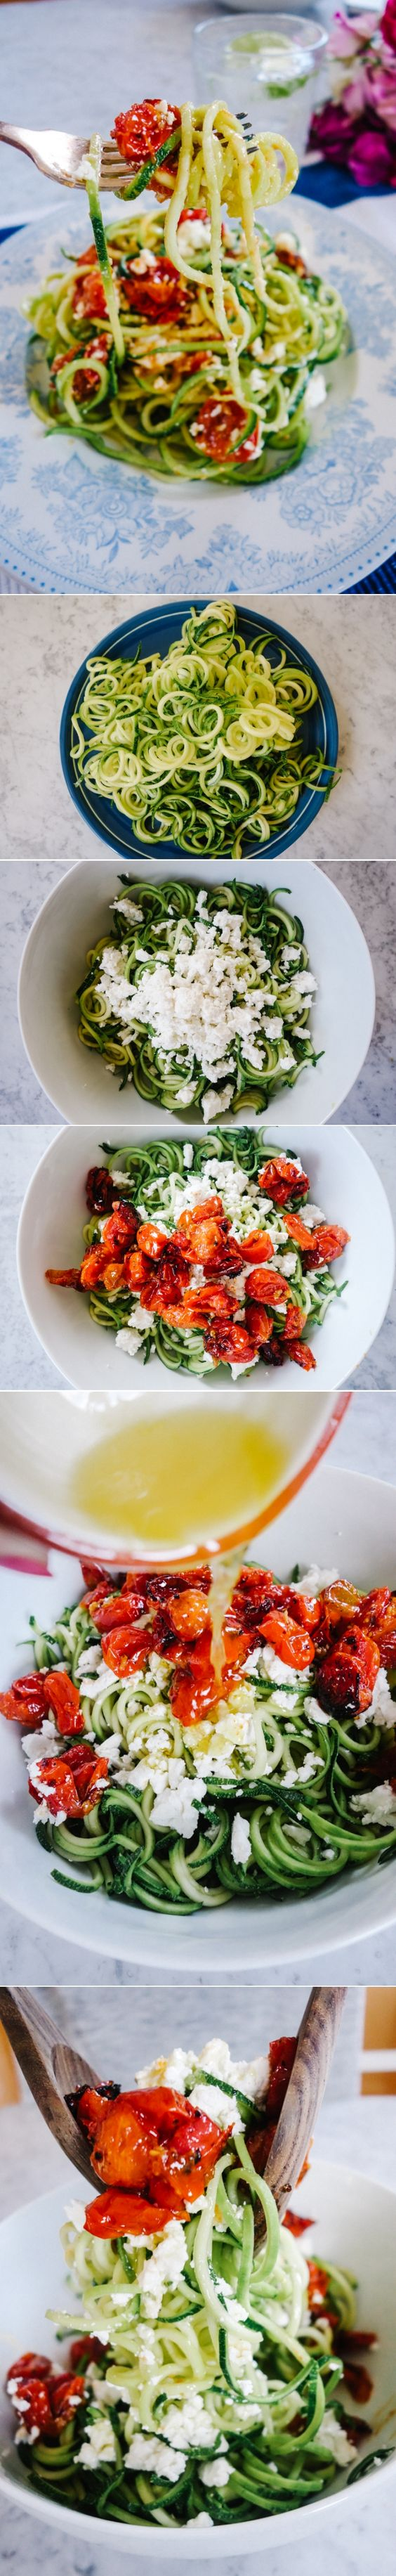 Lemon, Tomato and Feta Coodles - The Londoner #courgetti #spirilizer #lowcarb